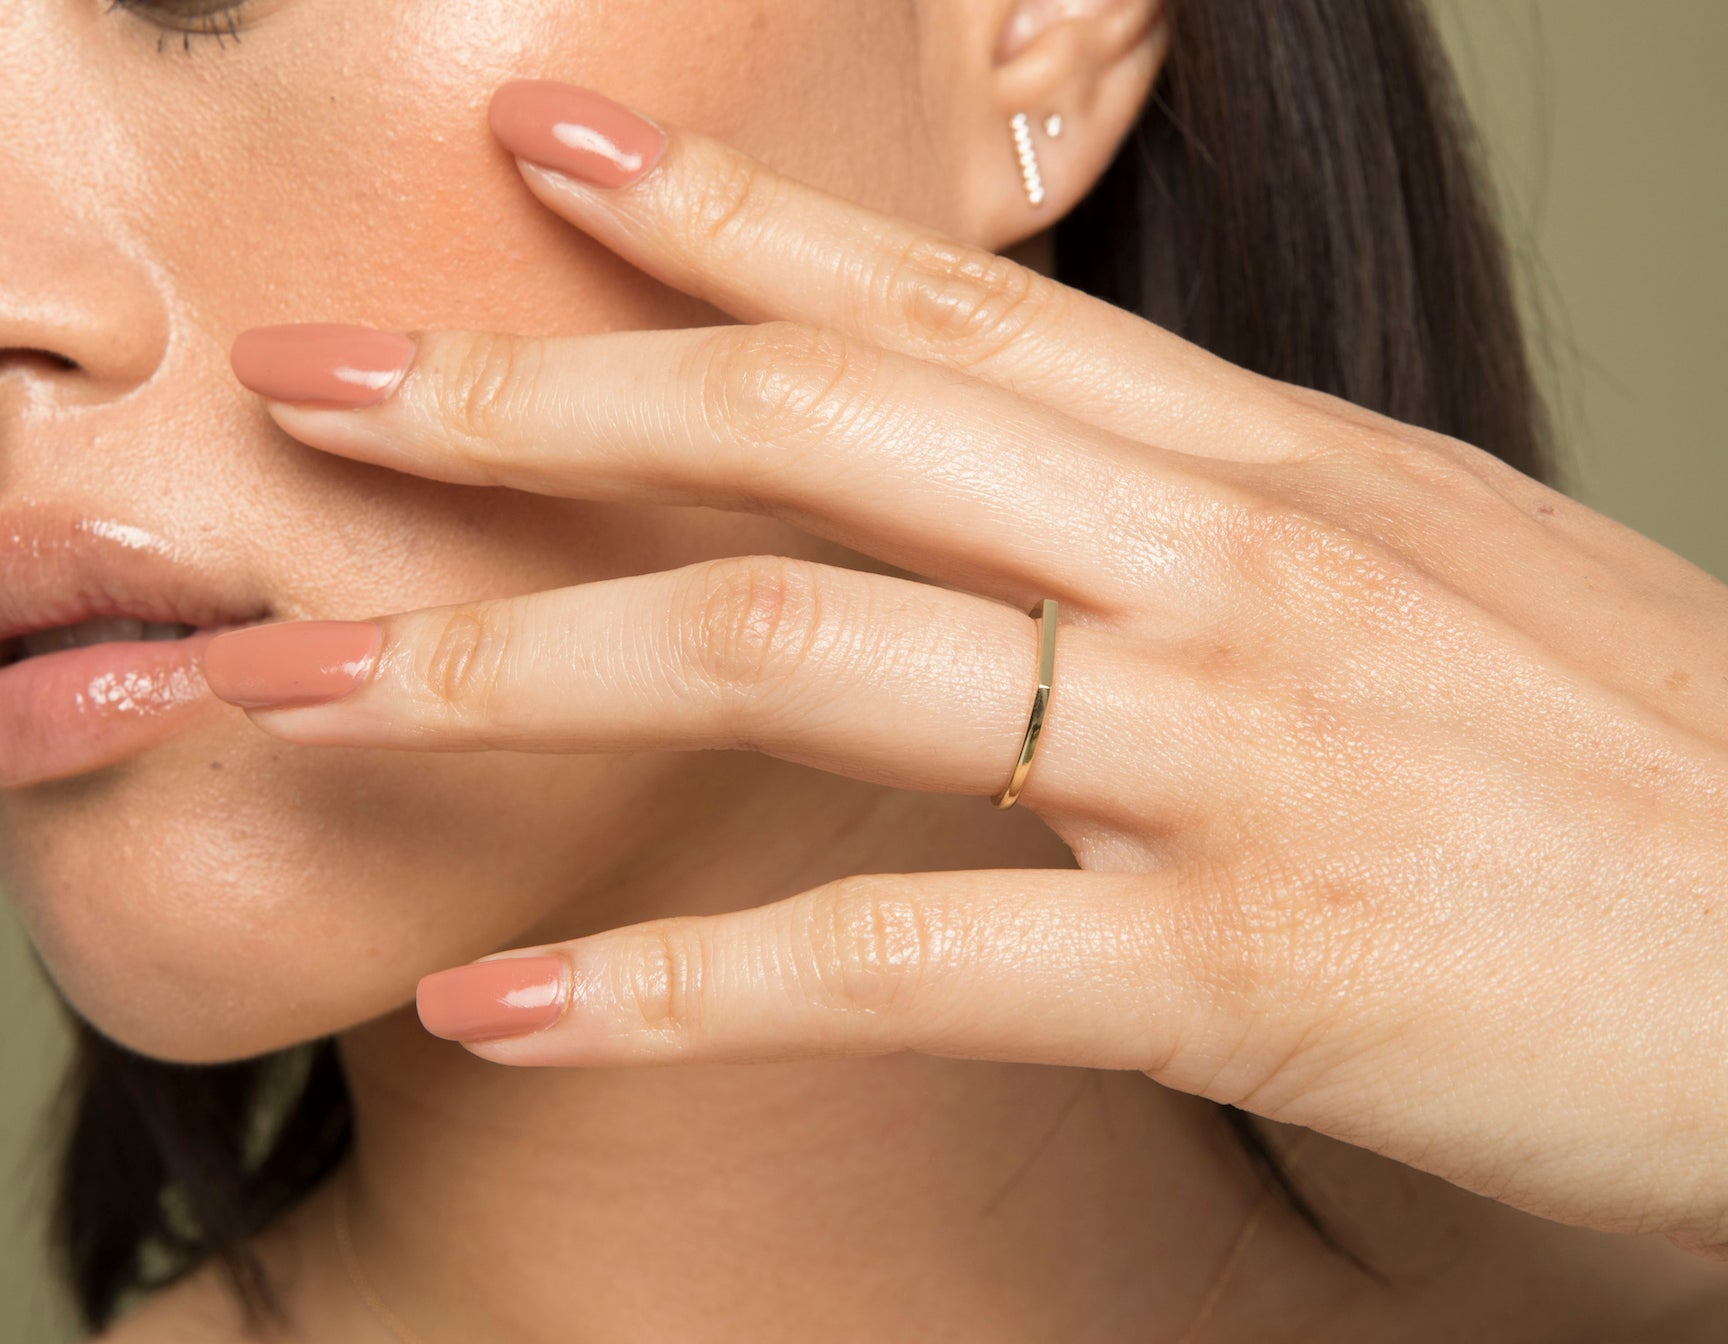 Model wearing sleek Vrai solid gold Line Ring, 14K White Gold